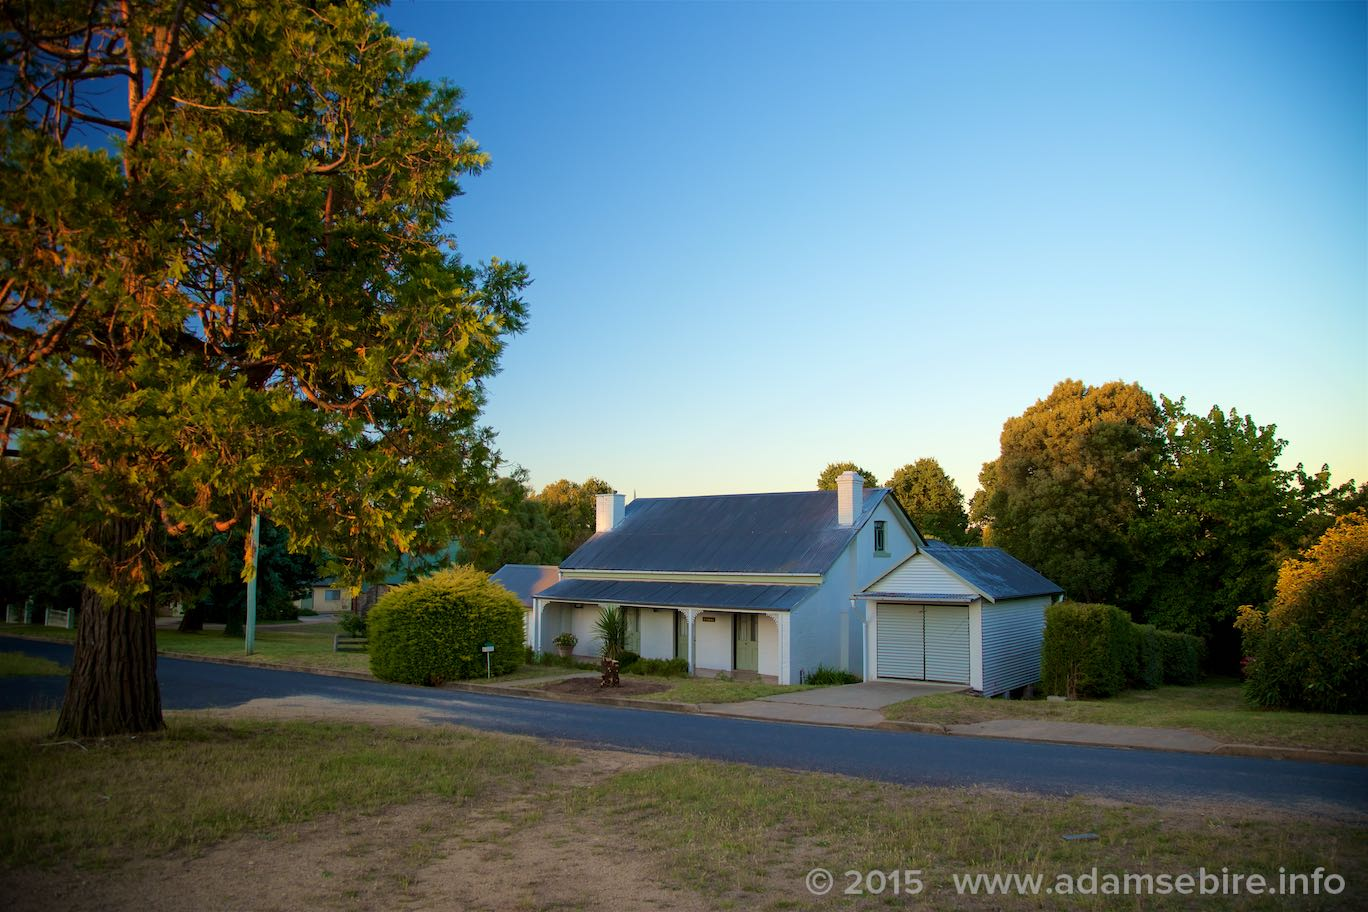 ⓘ If you're looking for accommodation for  more  than four people, or in a charming country town, we also offer Boonah: a lovely old family-sized house with a large garden ideal for short-term rental or holiday lets, in nearby Bombala:  www.adamsebire.info/boonah